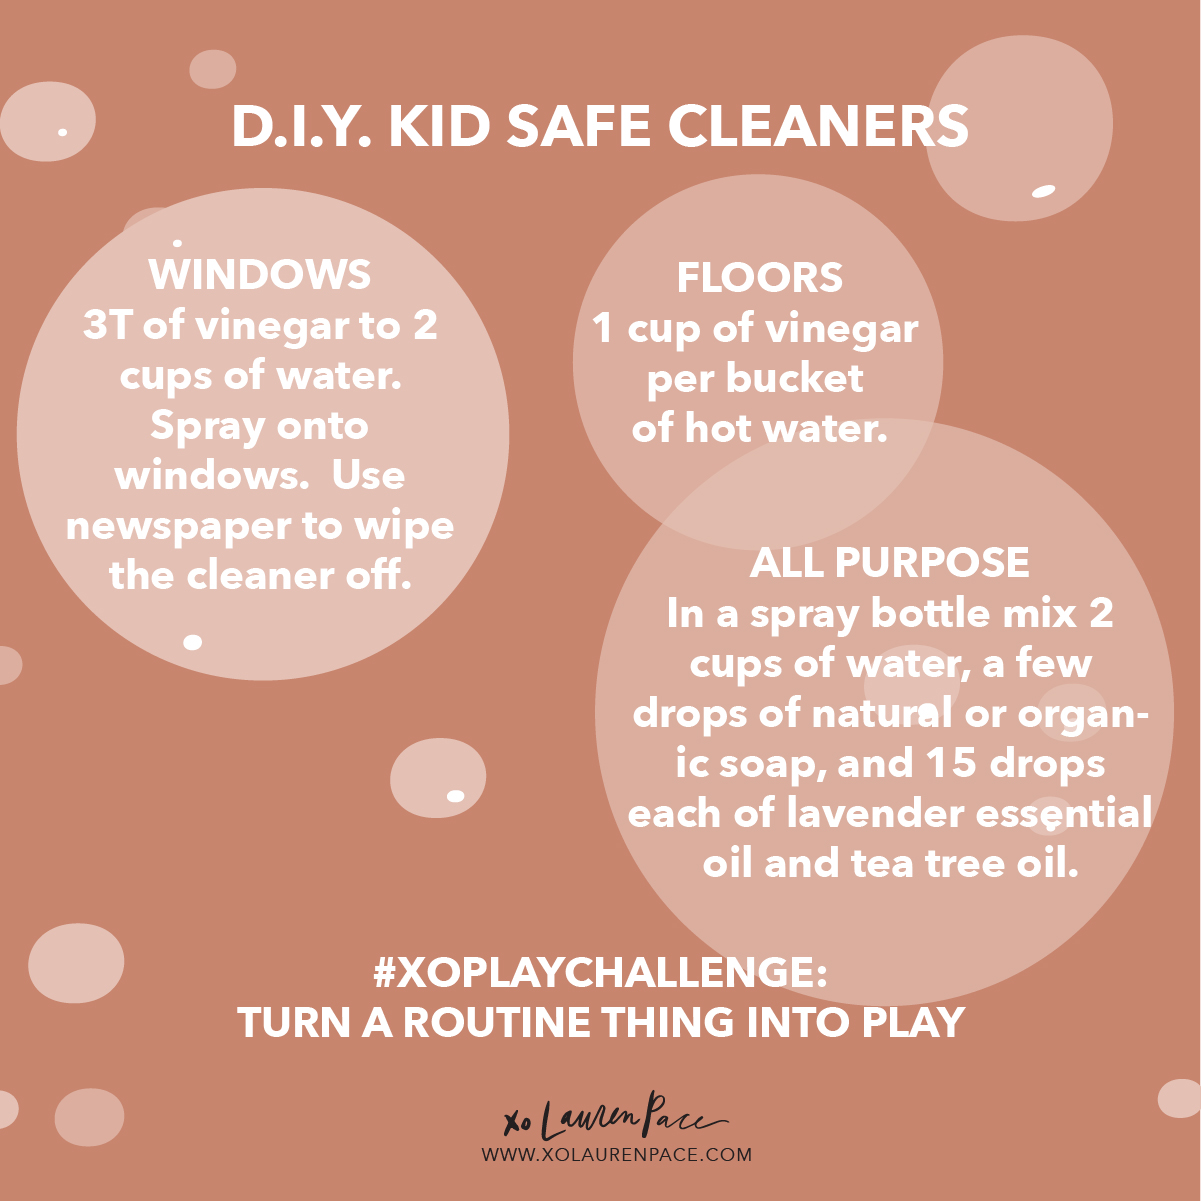 """I also like to give him FULL ACCESS to all my safe cleaning supplies. Today I shared some """"clean"""" cleaning recipes above, but mostly I use a spray bottle of water and Norwex Microfiber clothes. I have a kids set that includes on for windows/mirrors, one for dusting and one for all surfaces. It hangs on his art shelf downstairs right next to his mop and broom from Melissa and Doug.   This boy clears his spot every night after dinner. Wipes his table and chair and then continues to empty the bottle by spraying and cleaning the cupboards, floor and dogs.   I love including him in the routines because even if I didn't have the change to build a castle with him, I spent the day involving him and sharing my world with him."""